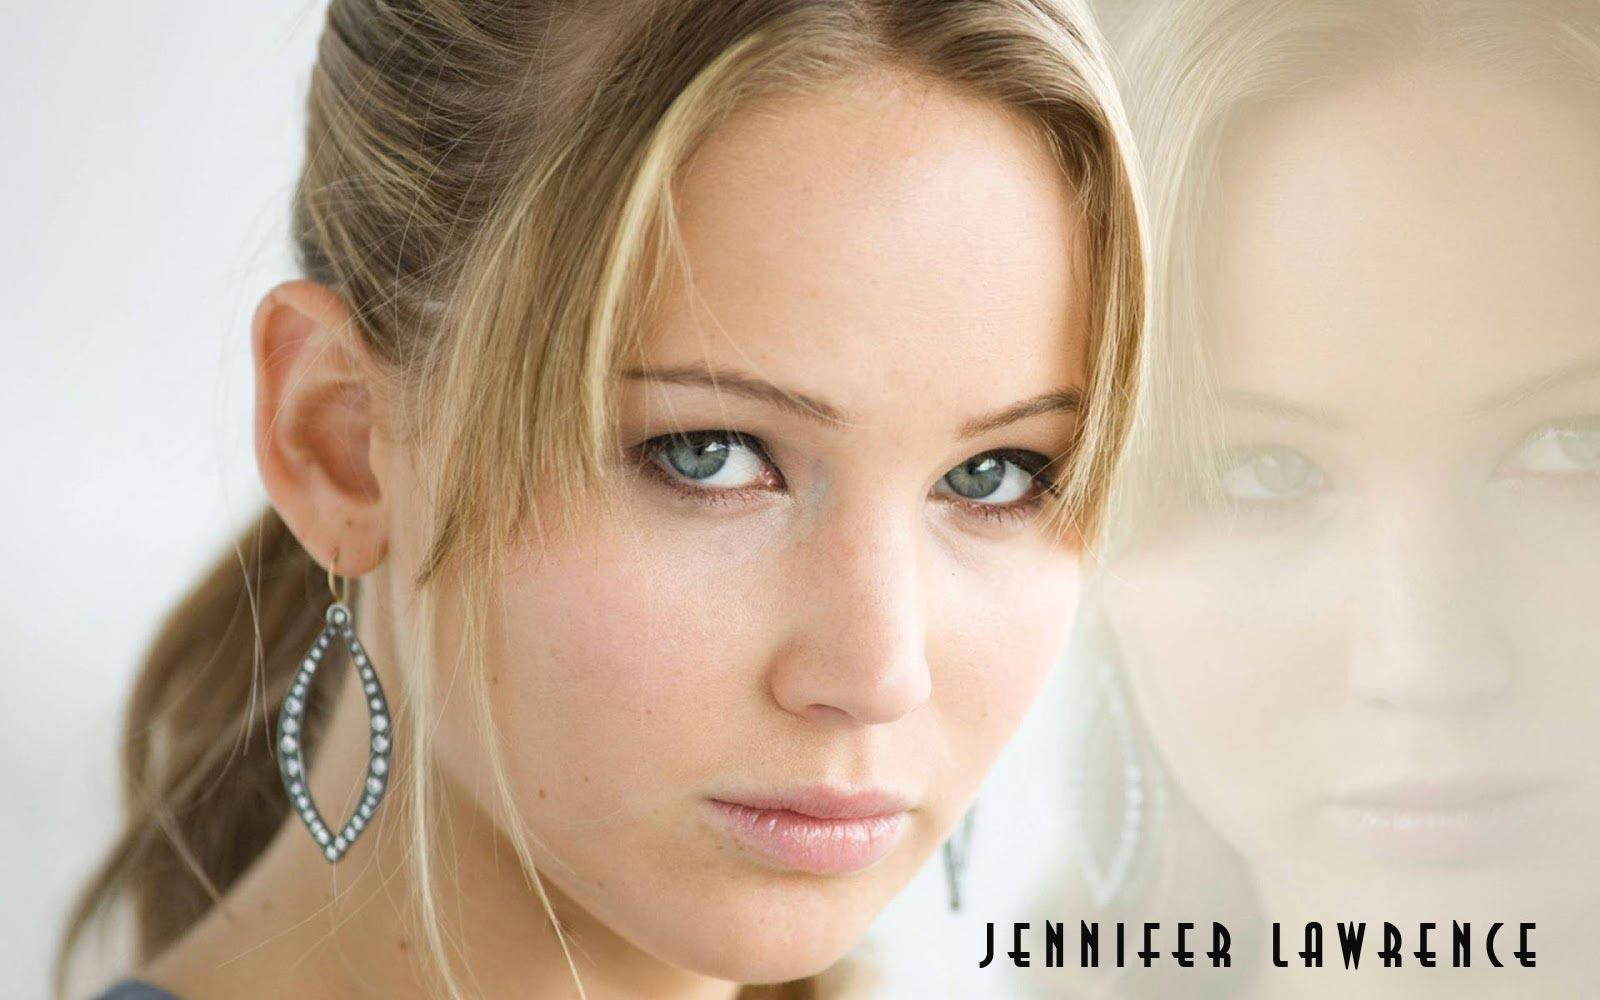 Jennifer Lawrence Wallpapers 1790 Images | wallgraf.